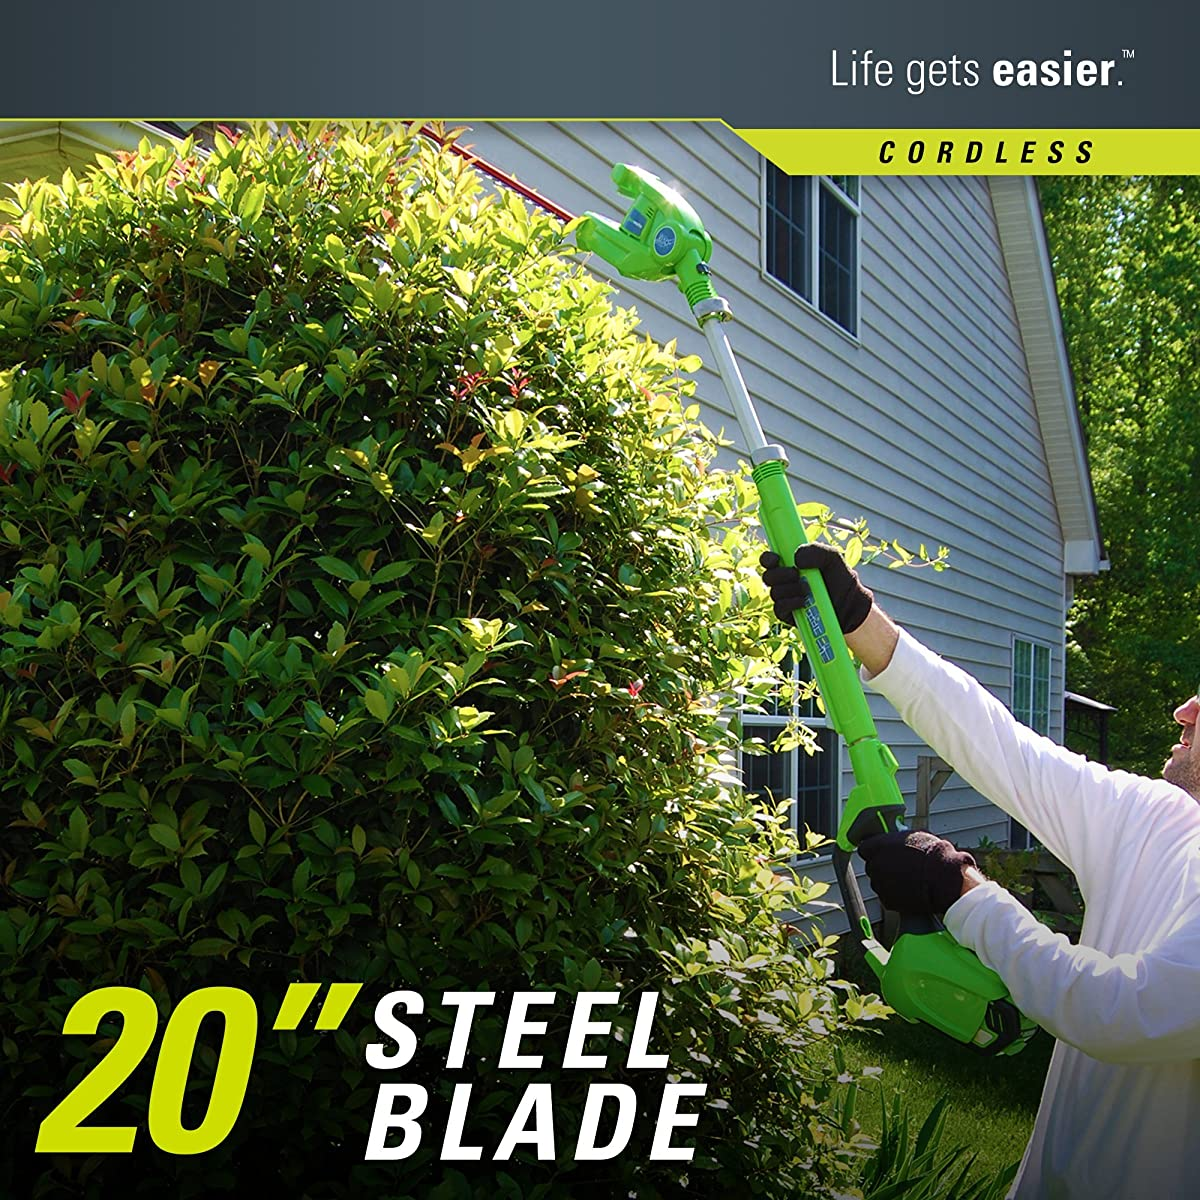 GreenWorks 2272 7.25 40V Cordless, 2.0 AH Battery Included 22272 Pole Hedge Trimmer, Electric Lime